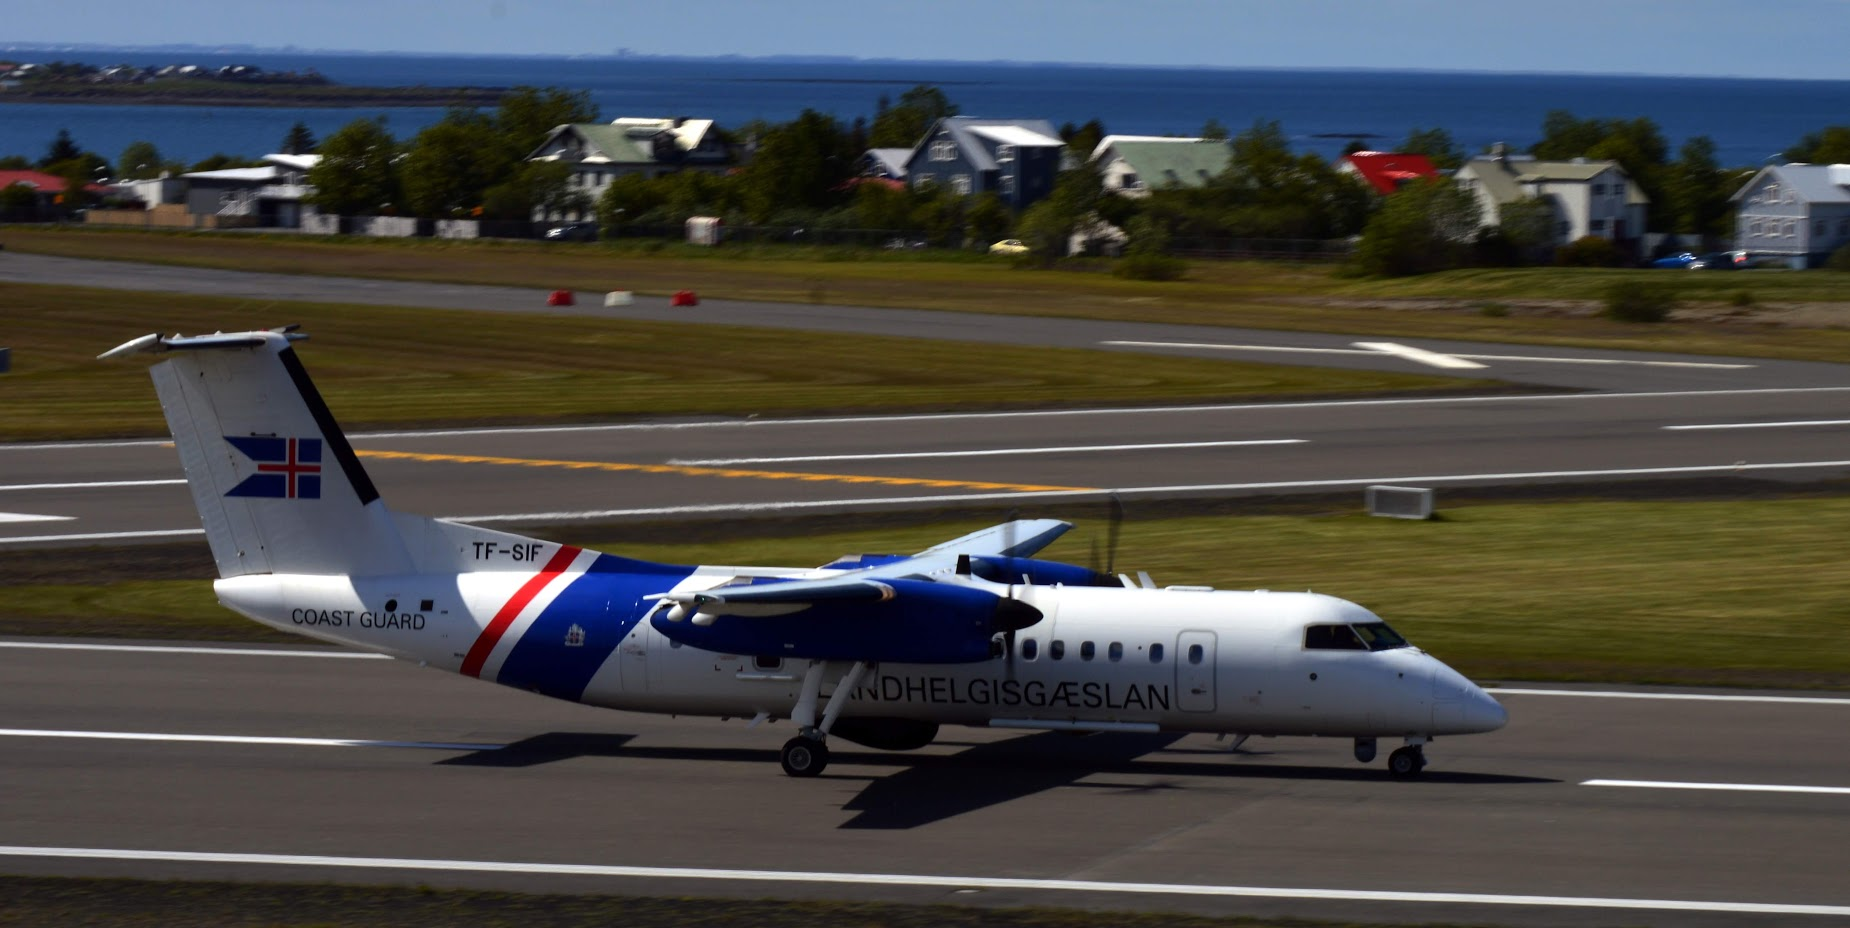 Icelandic Coast Guard Bombardier Dash 8 Q300MSA TF-SIF on Reykjavik Airshow 2019 // Source: PBY-5A Cataline lowpass on runway 01 in Reykjavik airport during airshow 2019 // Source: Halldór Sigurðsson